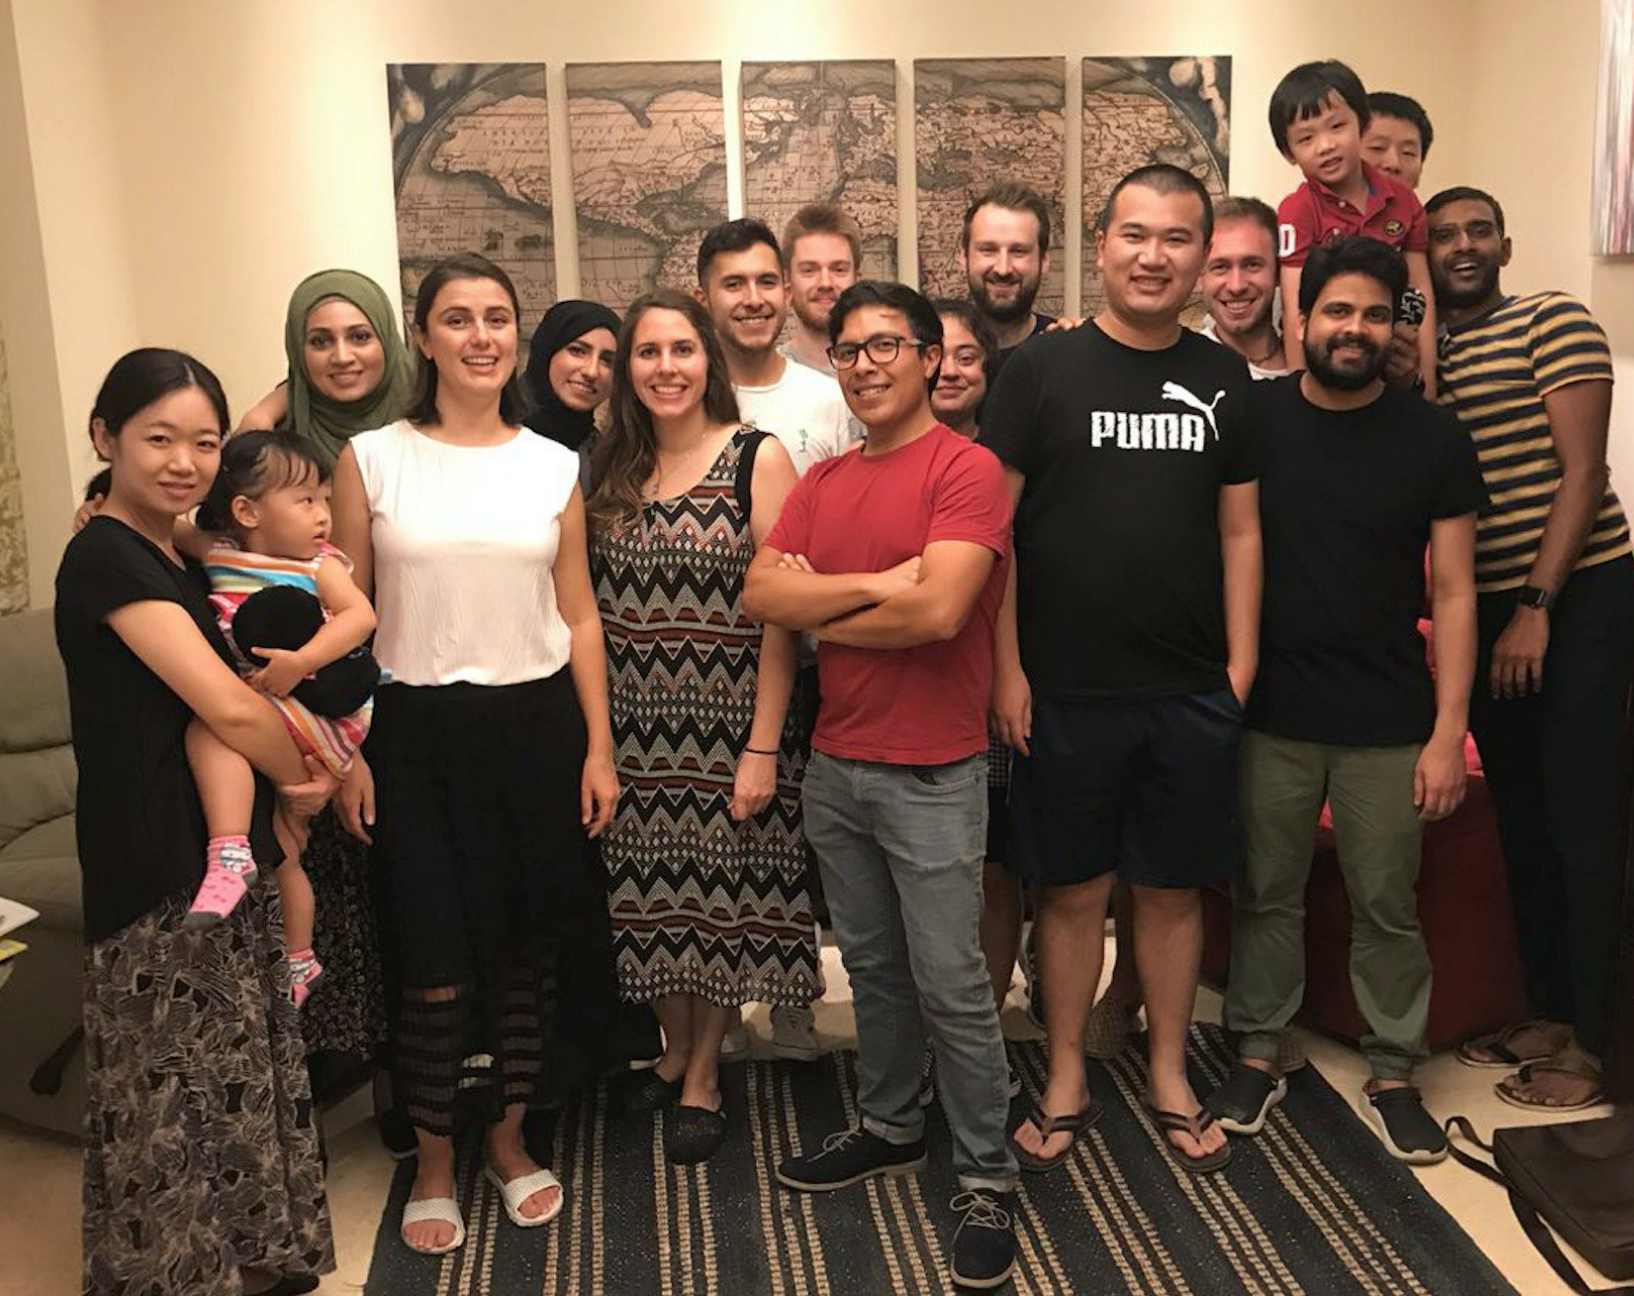 2nd Annual International Dinner Party - 9/9/18Our Growing OMEGA lab Family! This weekend we had our 2nd annual international/multicultural Omegalab dinner and bbq hosted by our PI Derya Baran . Overall a lovely evening with great food and great people.